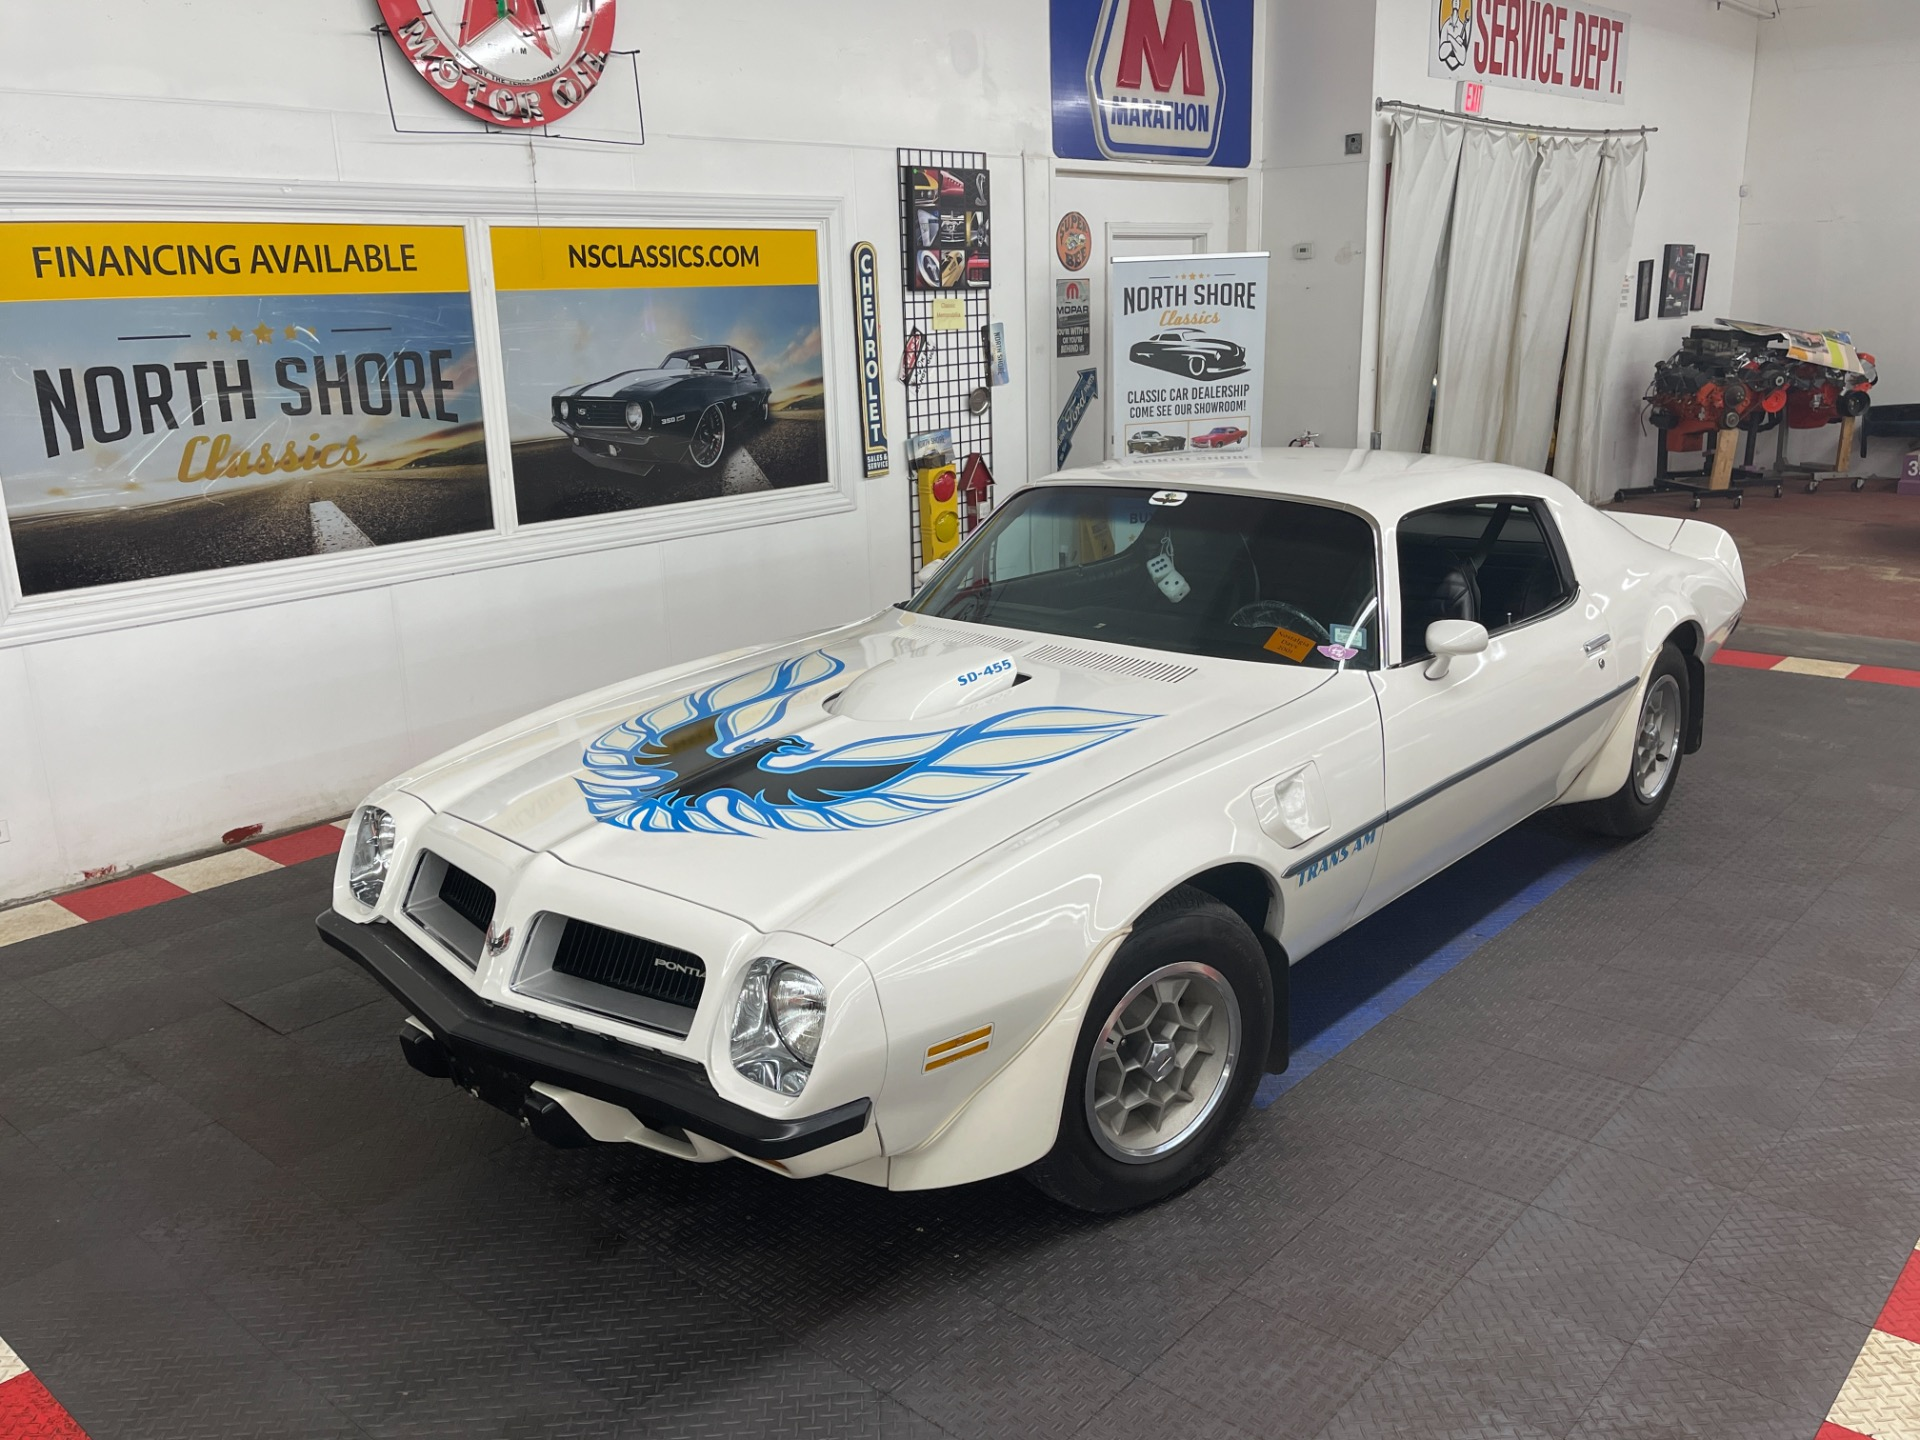 Used 1974 Pontiac Firebird - TRANS AM - Y CODE 455 - 9,013 ACTUAL MILES - SEE VIDEO - | Mundelein, IL